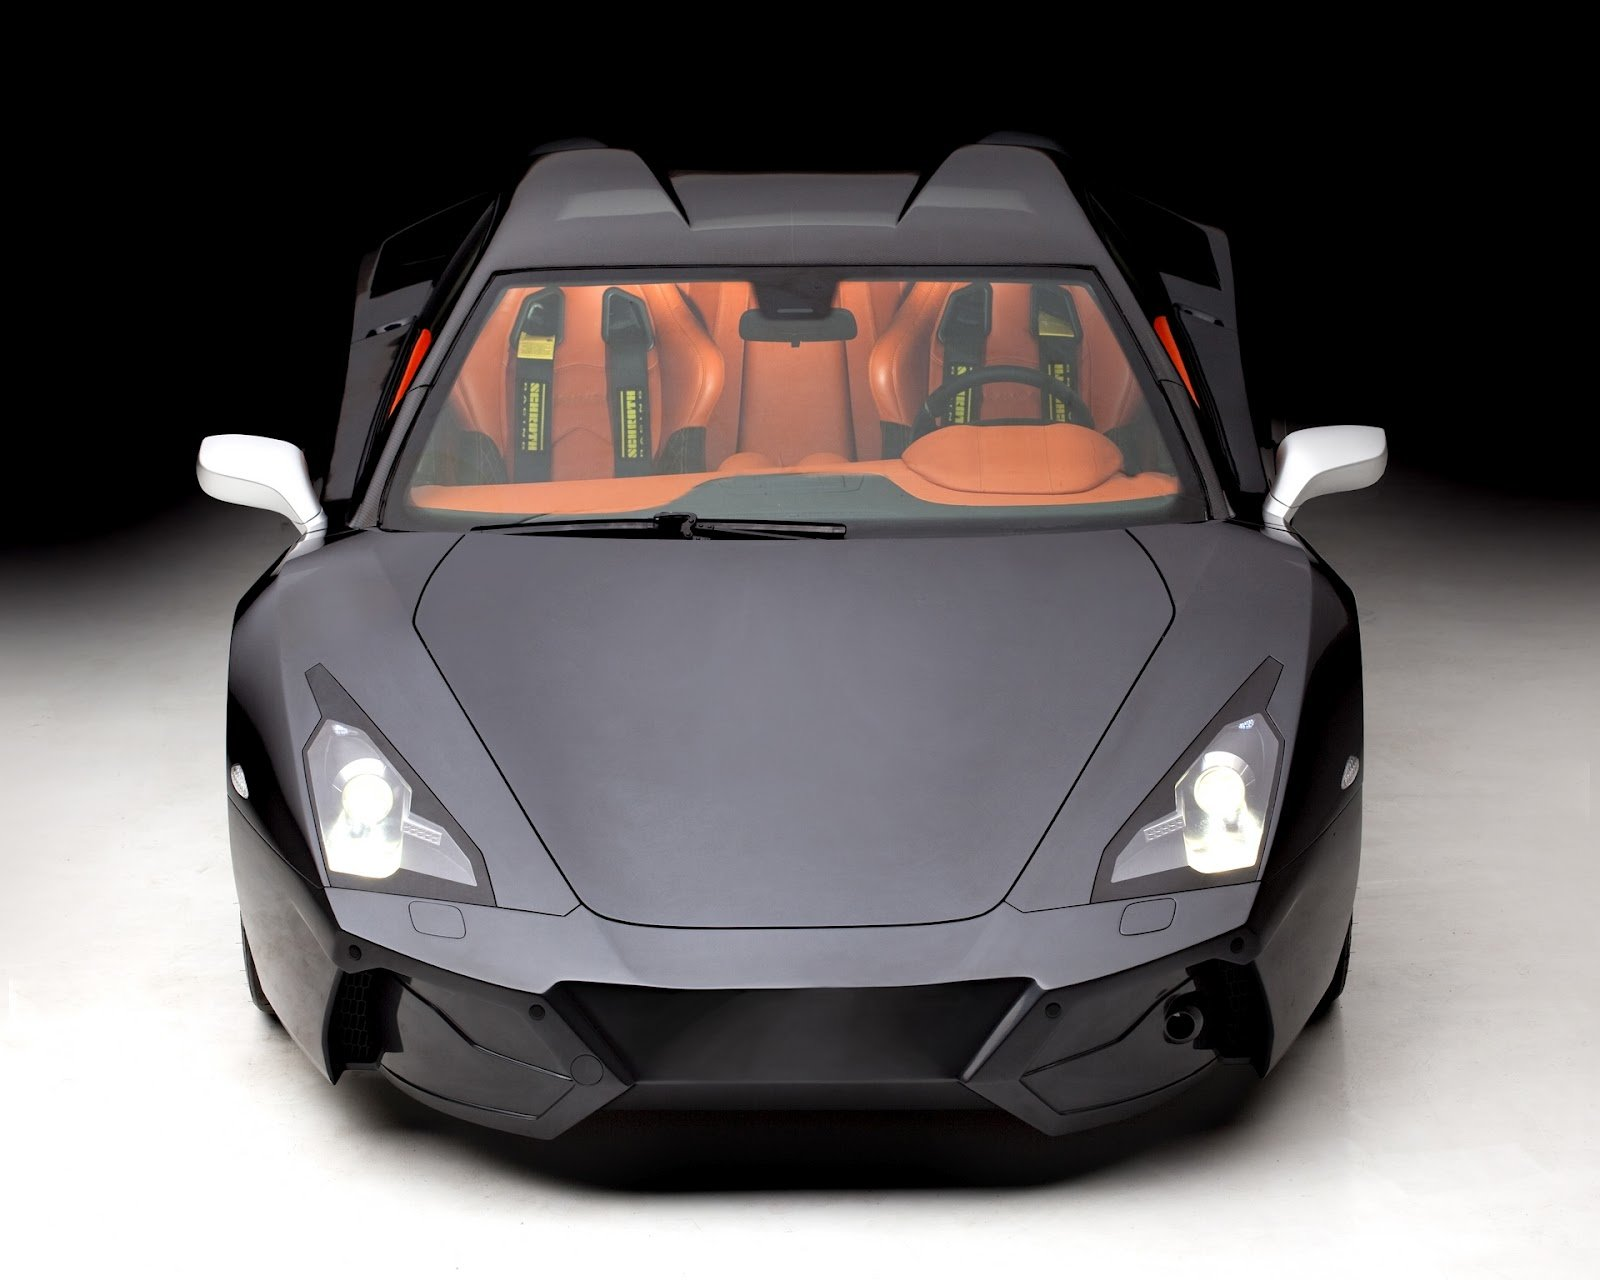 Latest 2013 Arrinera Supercar Auto Cars Concept Free Download